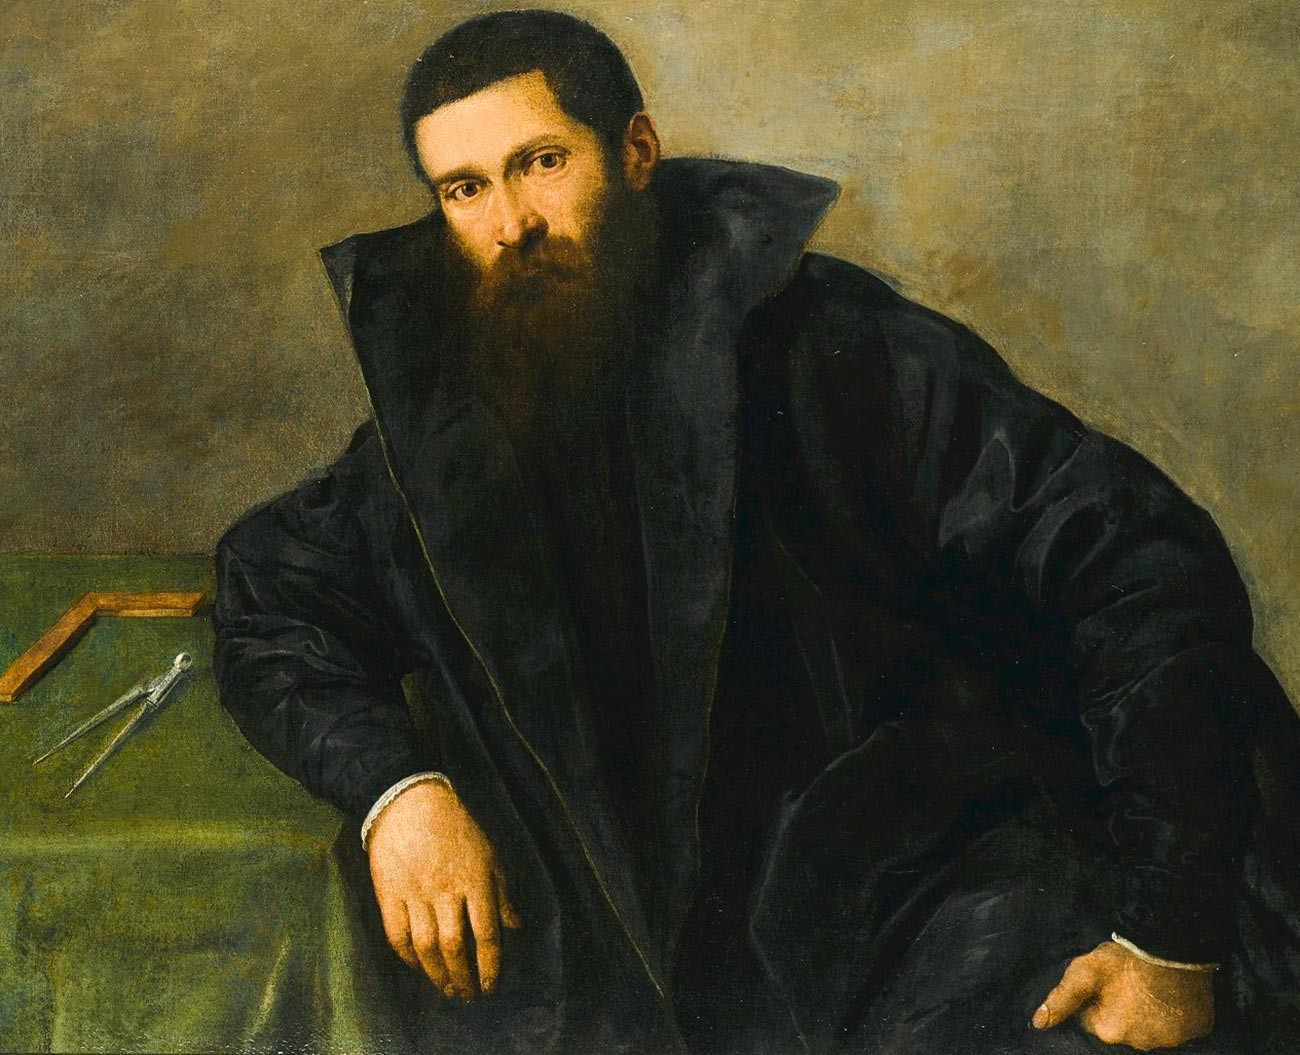 Aristotle Fioravanti by Lorenzo Lotto